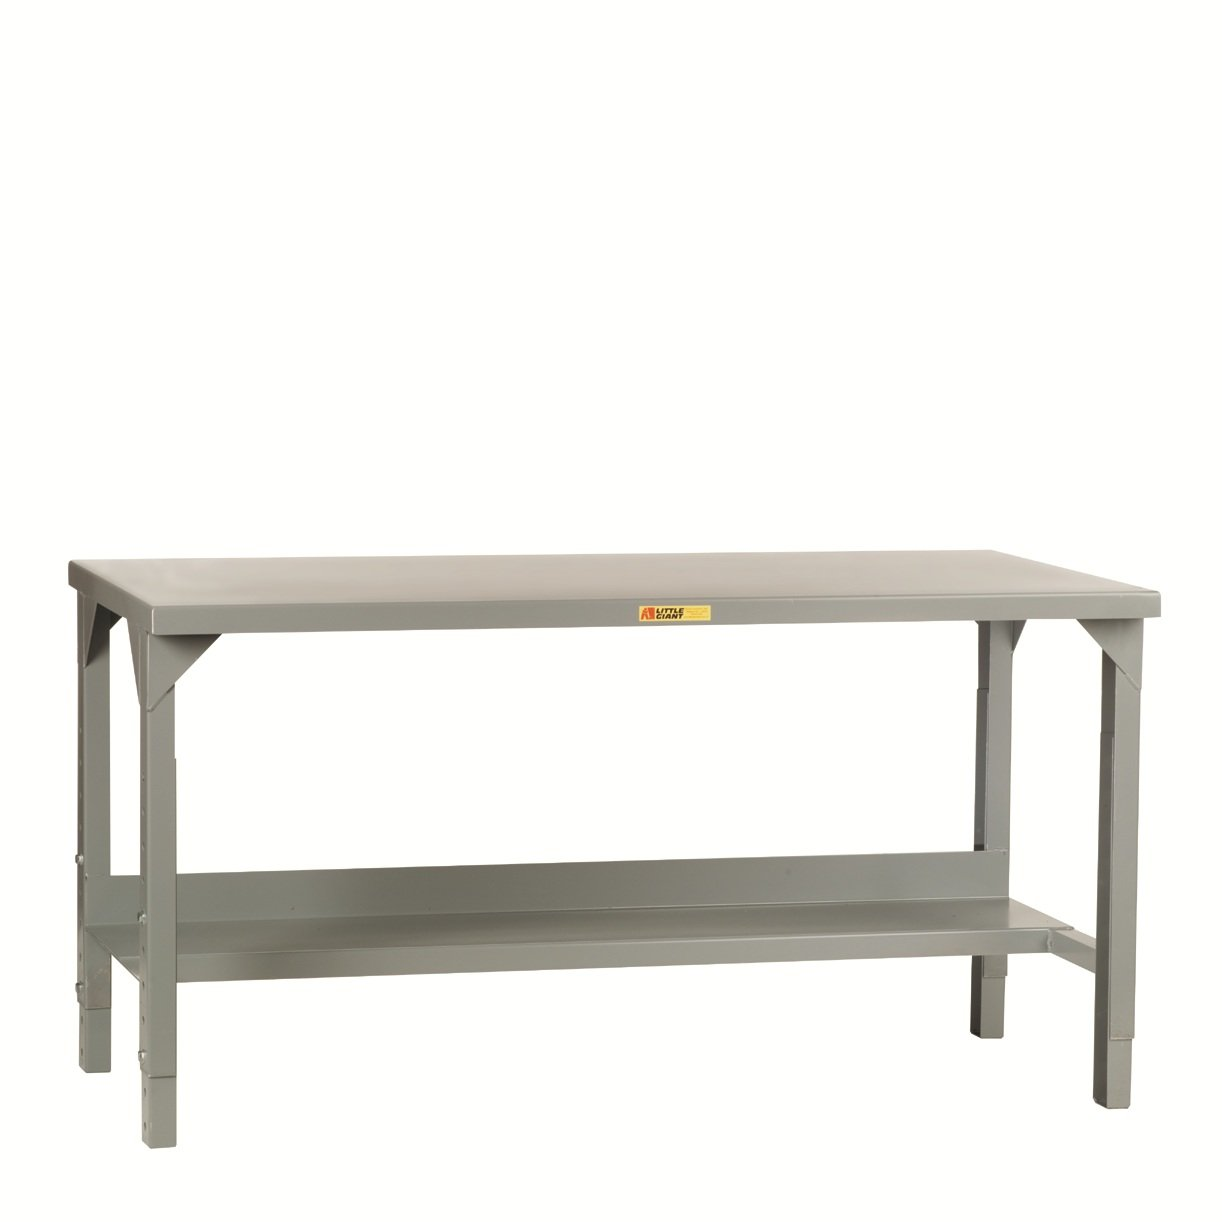 Little Giant WST2-3048-AH Welded Steel Workbench, 5000 lb. Load Capacity, 1 Half-Shelf, 27'' to 41'' Adjustable Height, 48'' x 30'', Gray